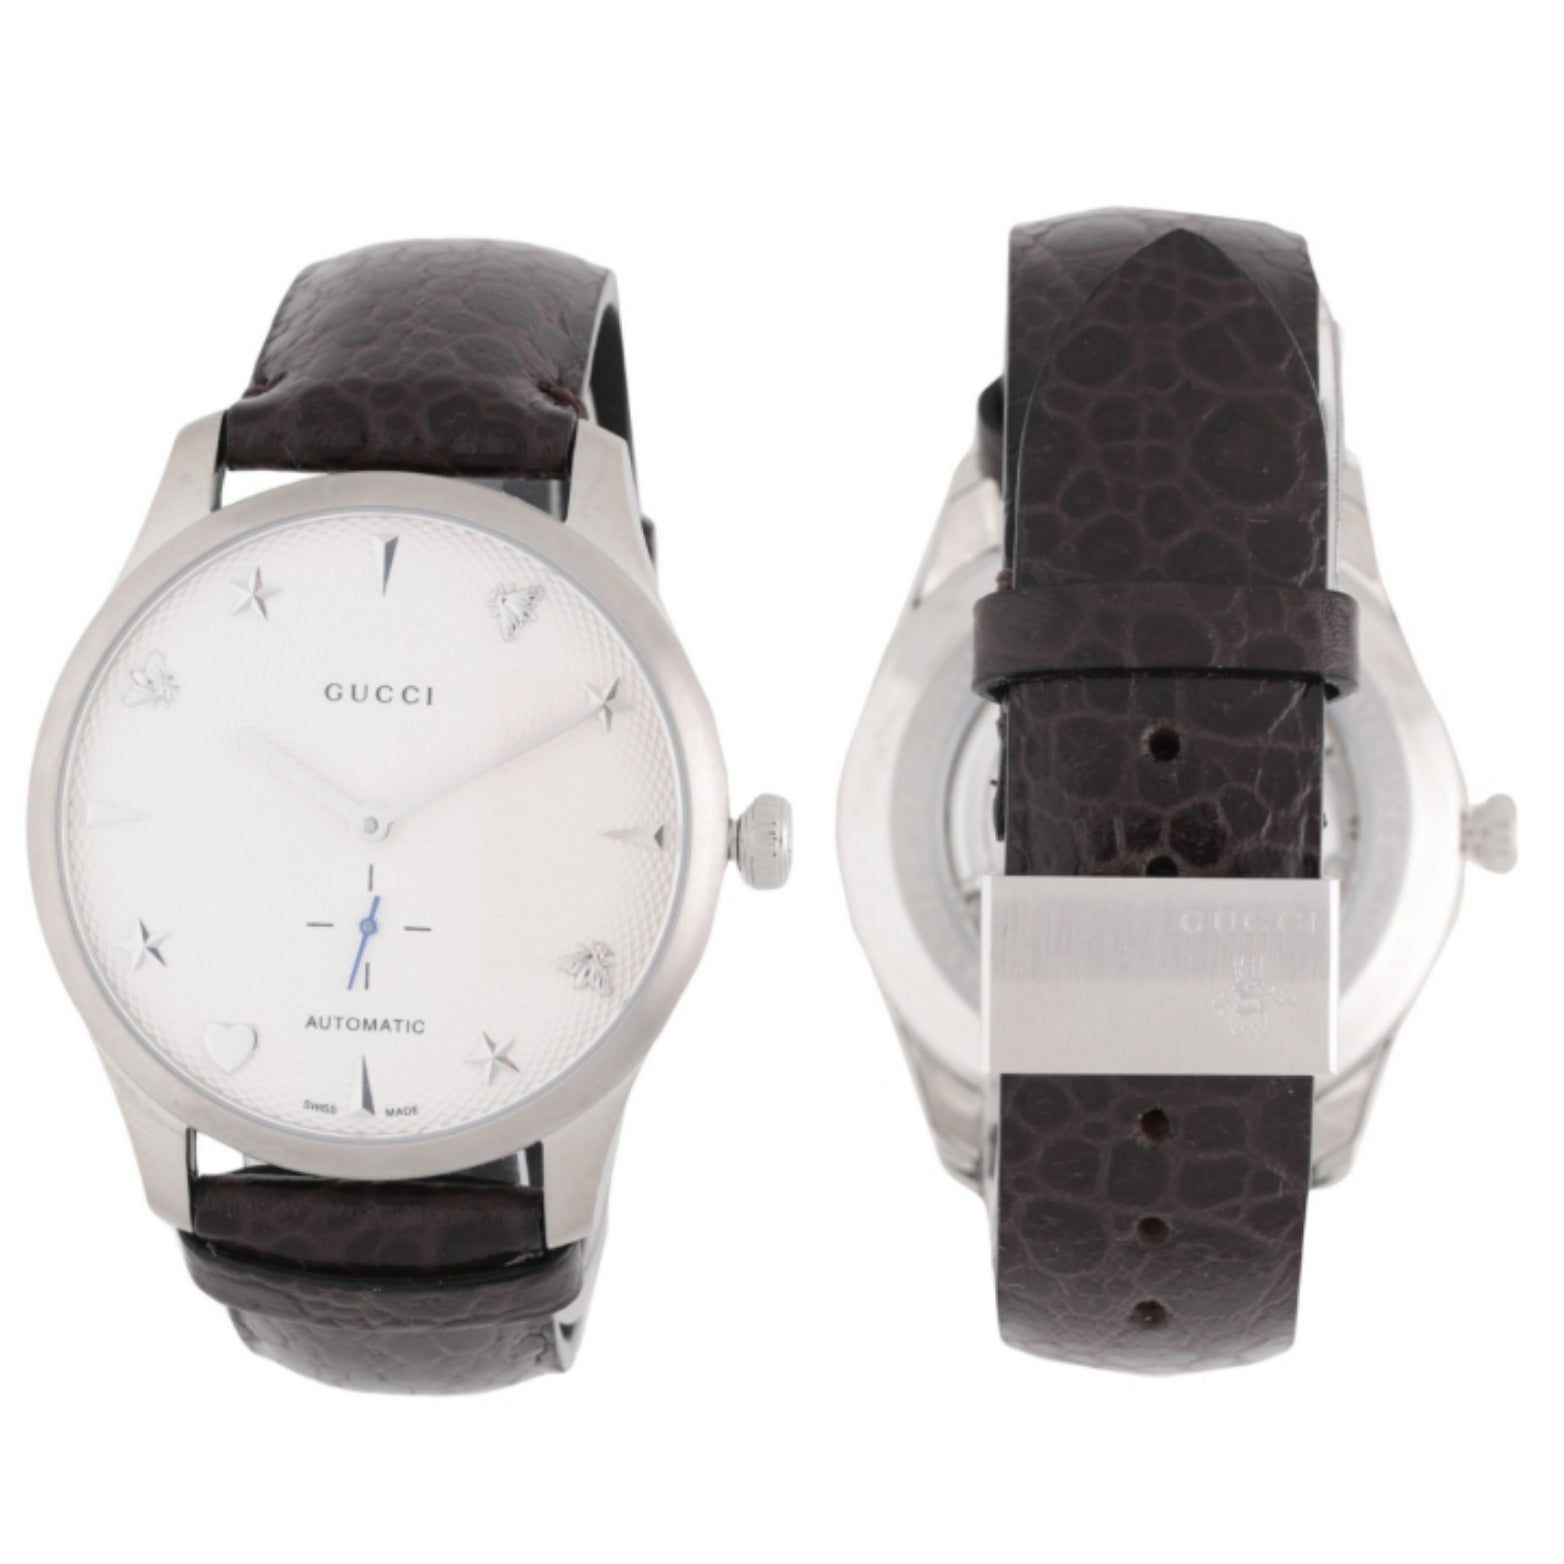 Gucci - Men's Wristwatch